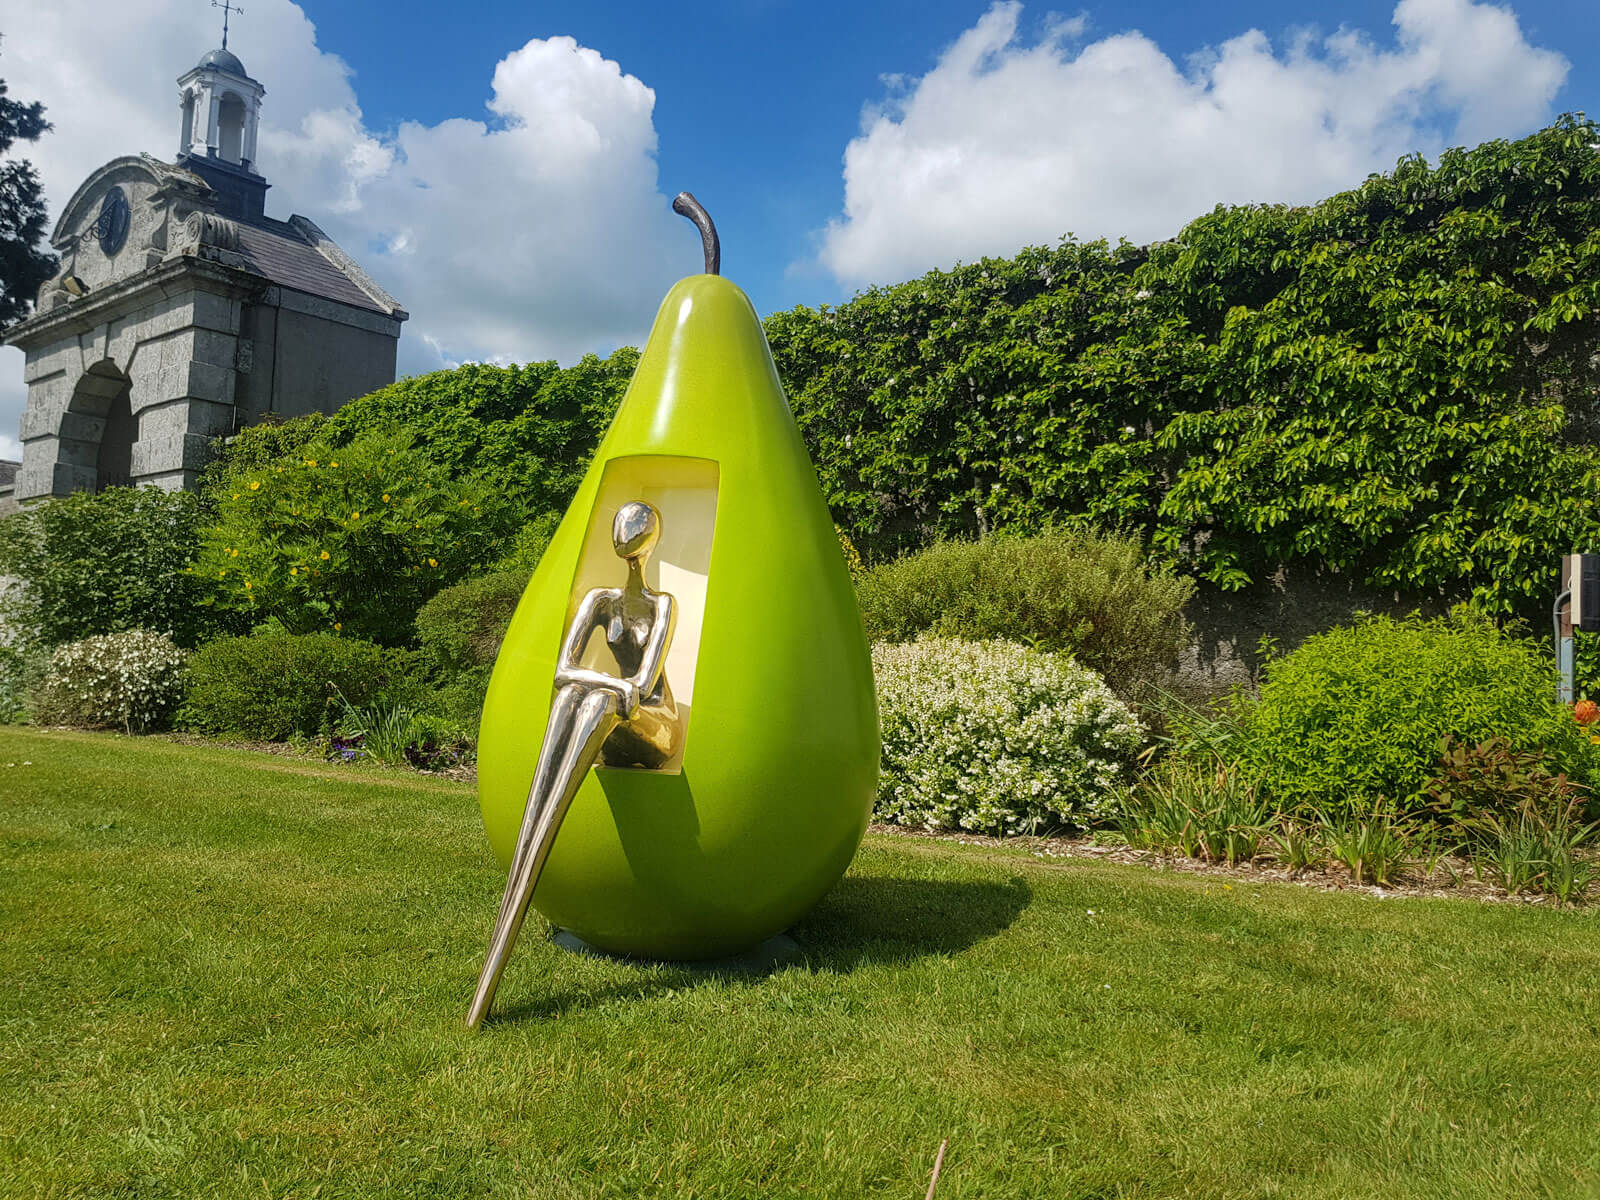 pear russborough house 1